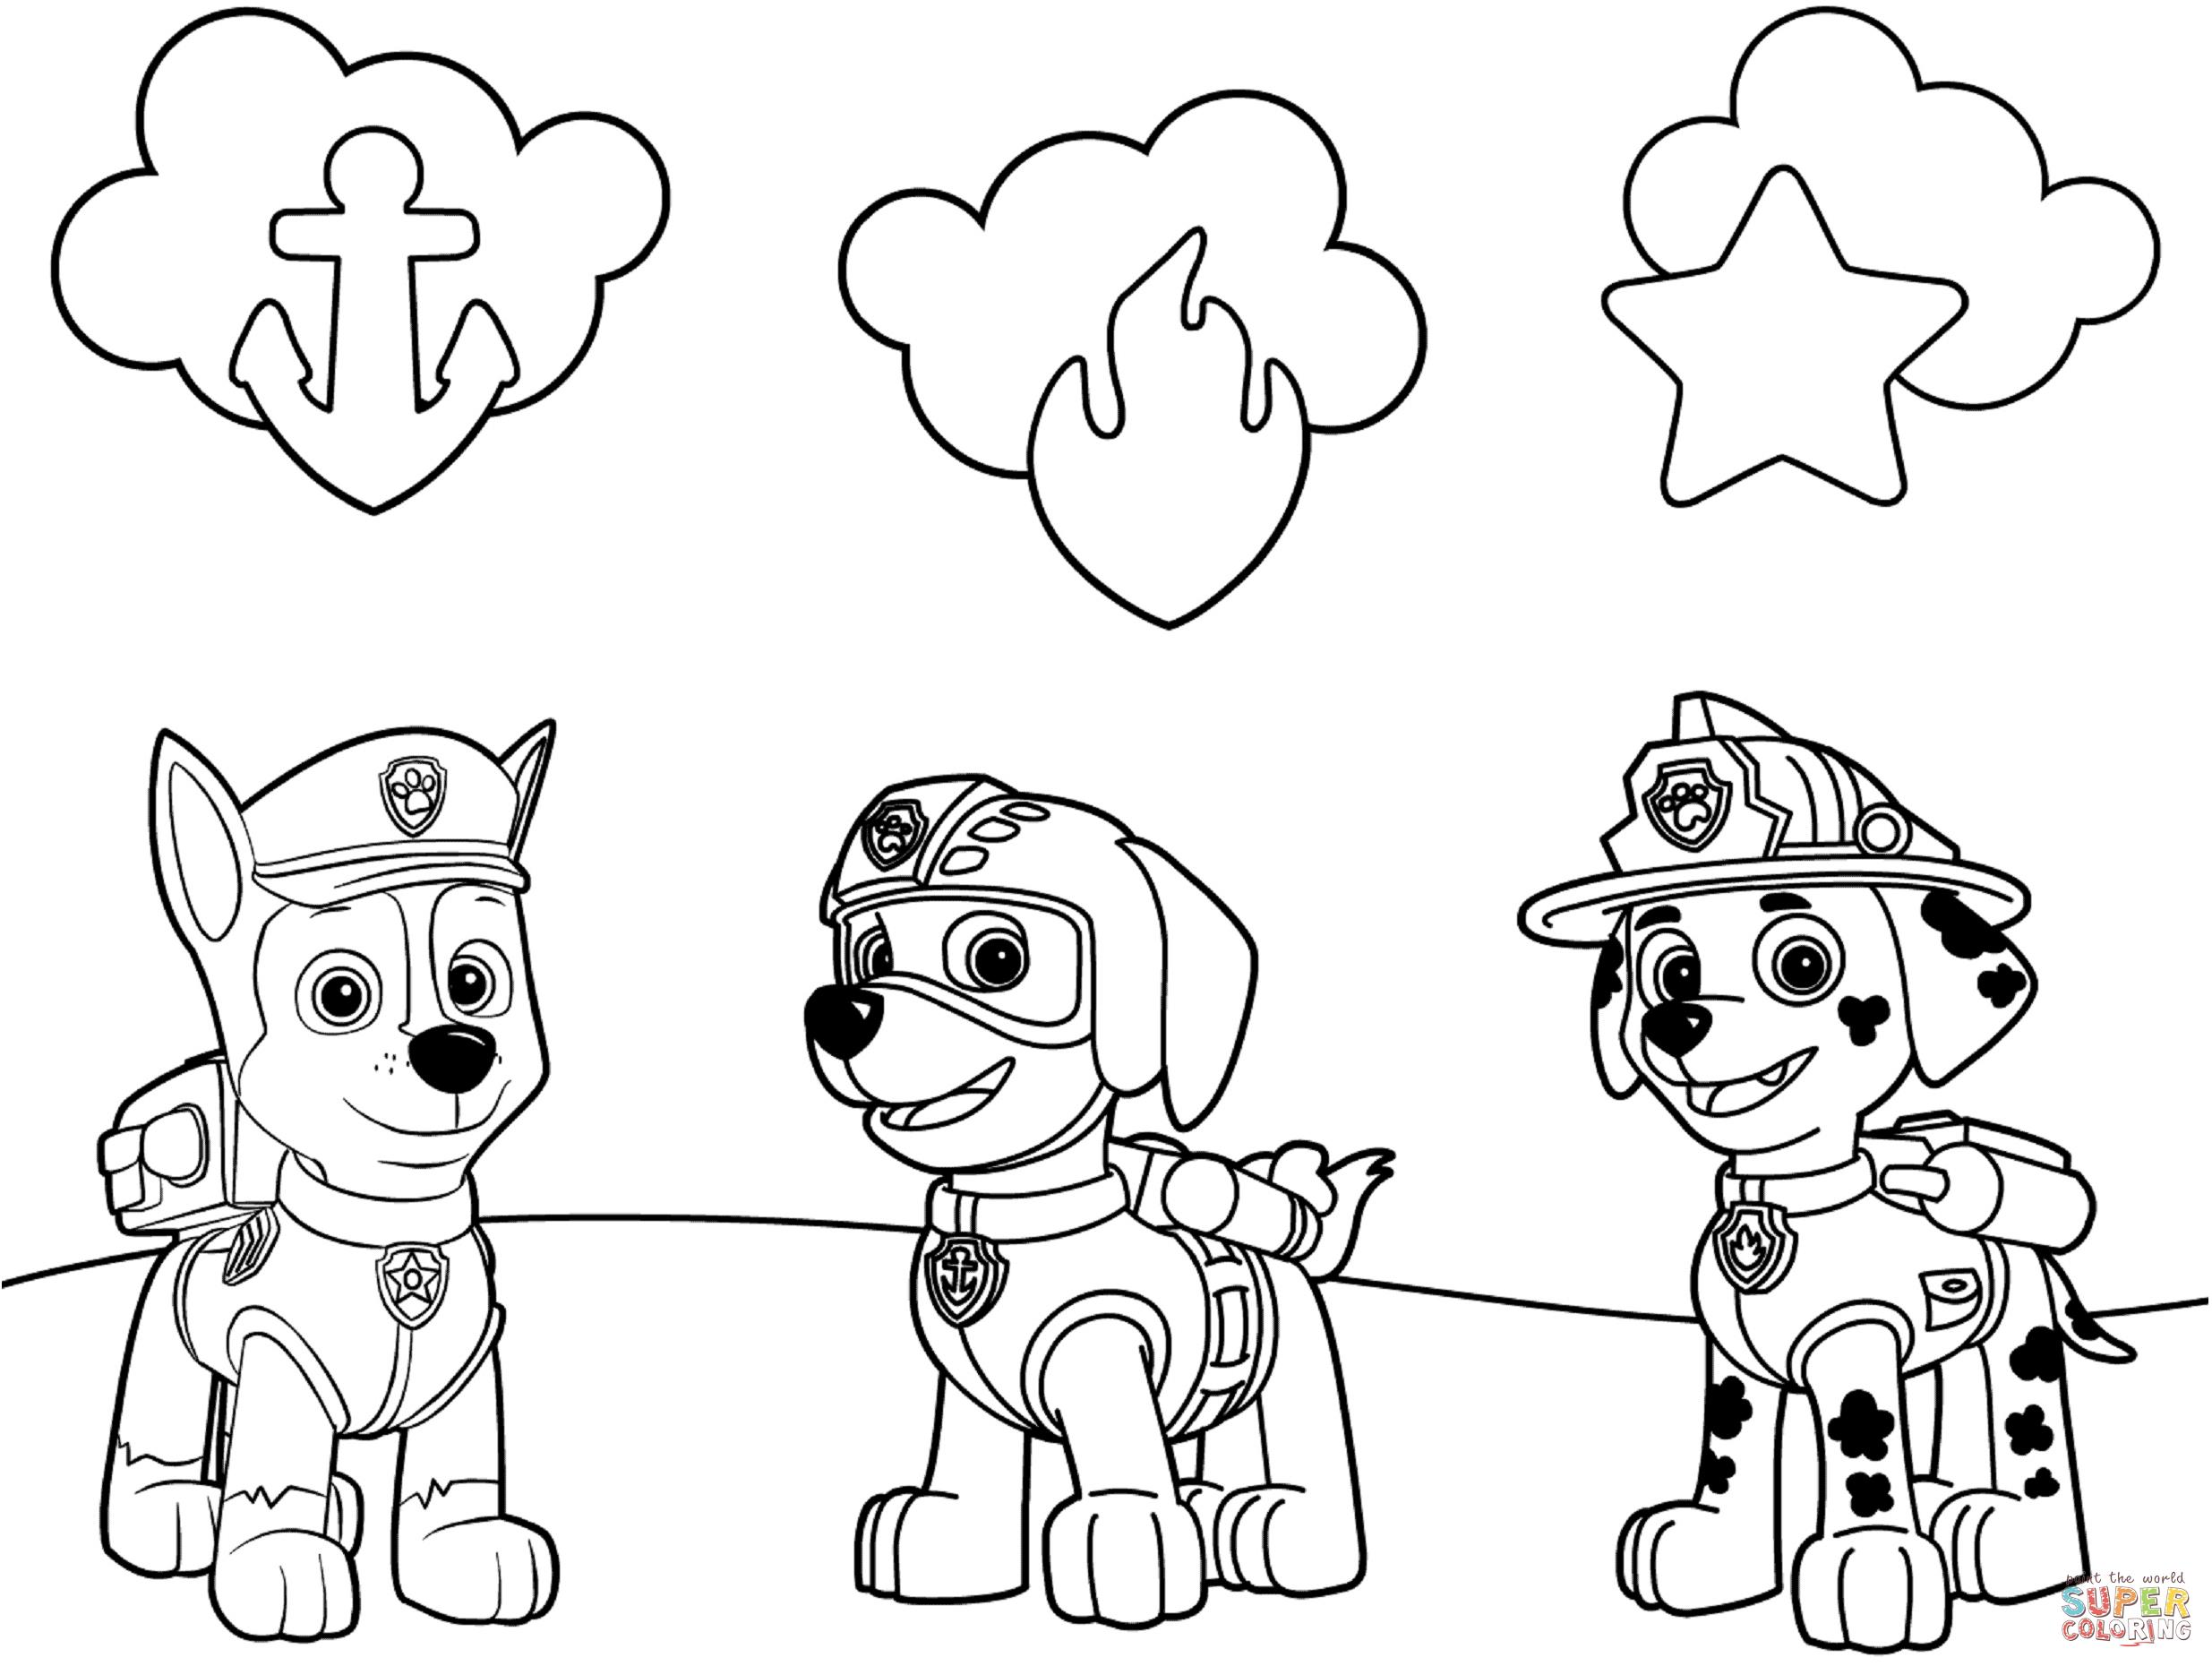 paw patrol birthday coloring sheets ; paw-patrol-badges-coloring-page-free-printable-pages-and